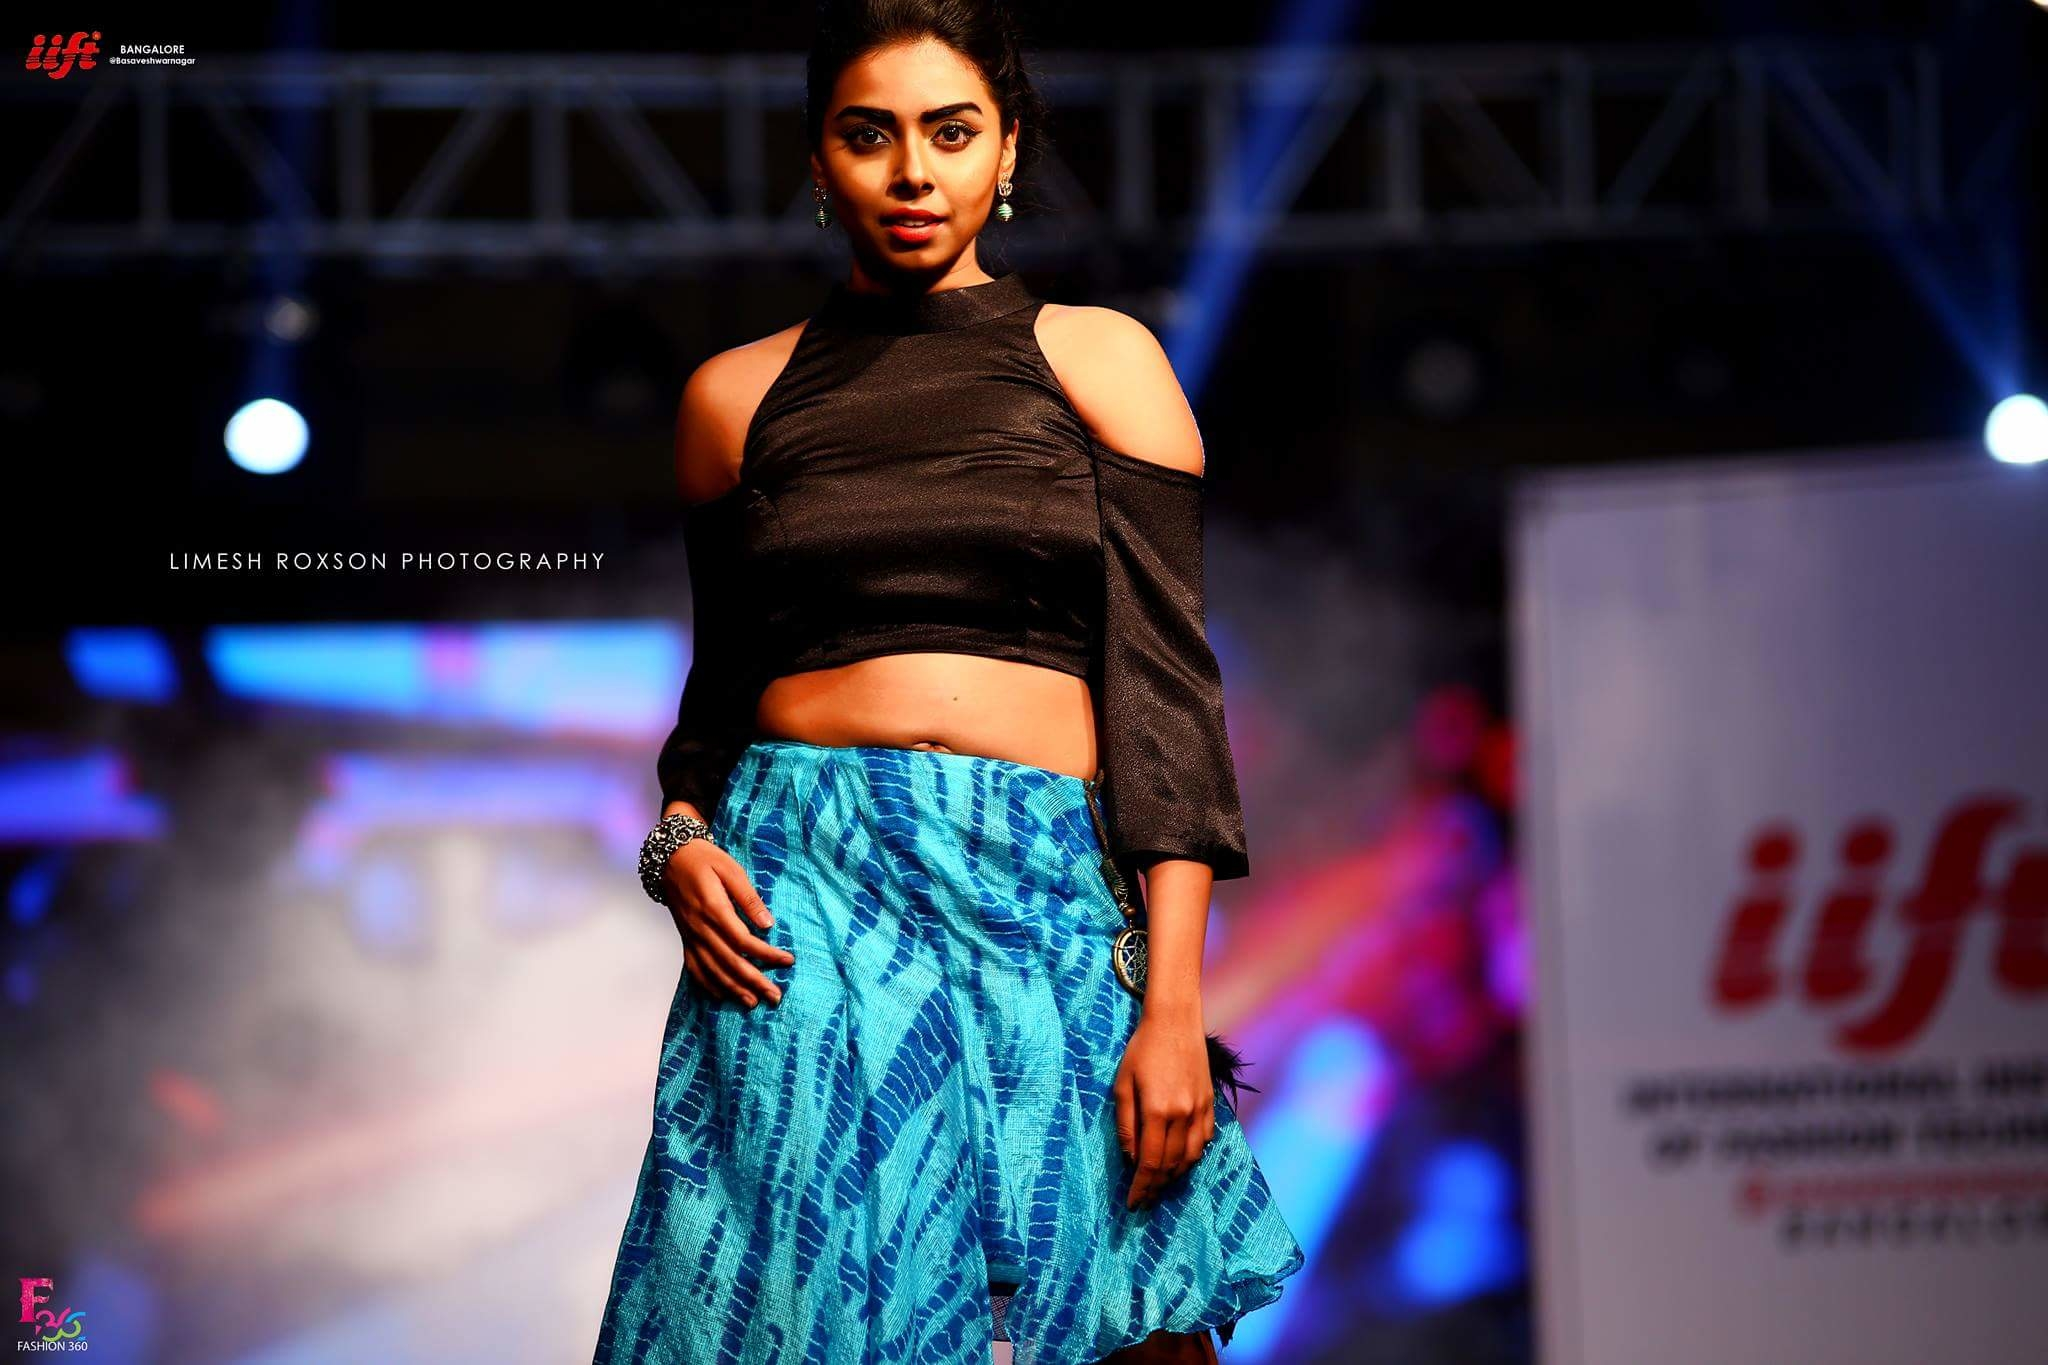 IIFT Presents Simcha Fashion Celebration  #fashion #women-fashion #fashion-diva #be-fashionable #summer-fashion #tbt #love #model #actress #celebrity #canon #fashionphotography #celebrityfashion #makeup #likeforlike #like4follow #like4like #roposo #soroposo #roposotalks #roposoblogger #roposome #roposolove #styling #summer-style #photography